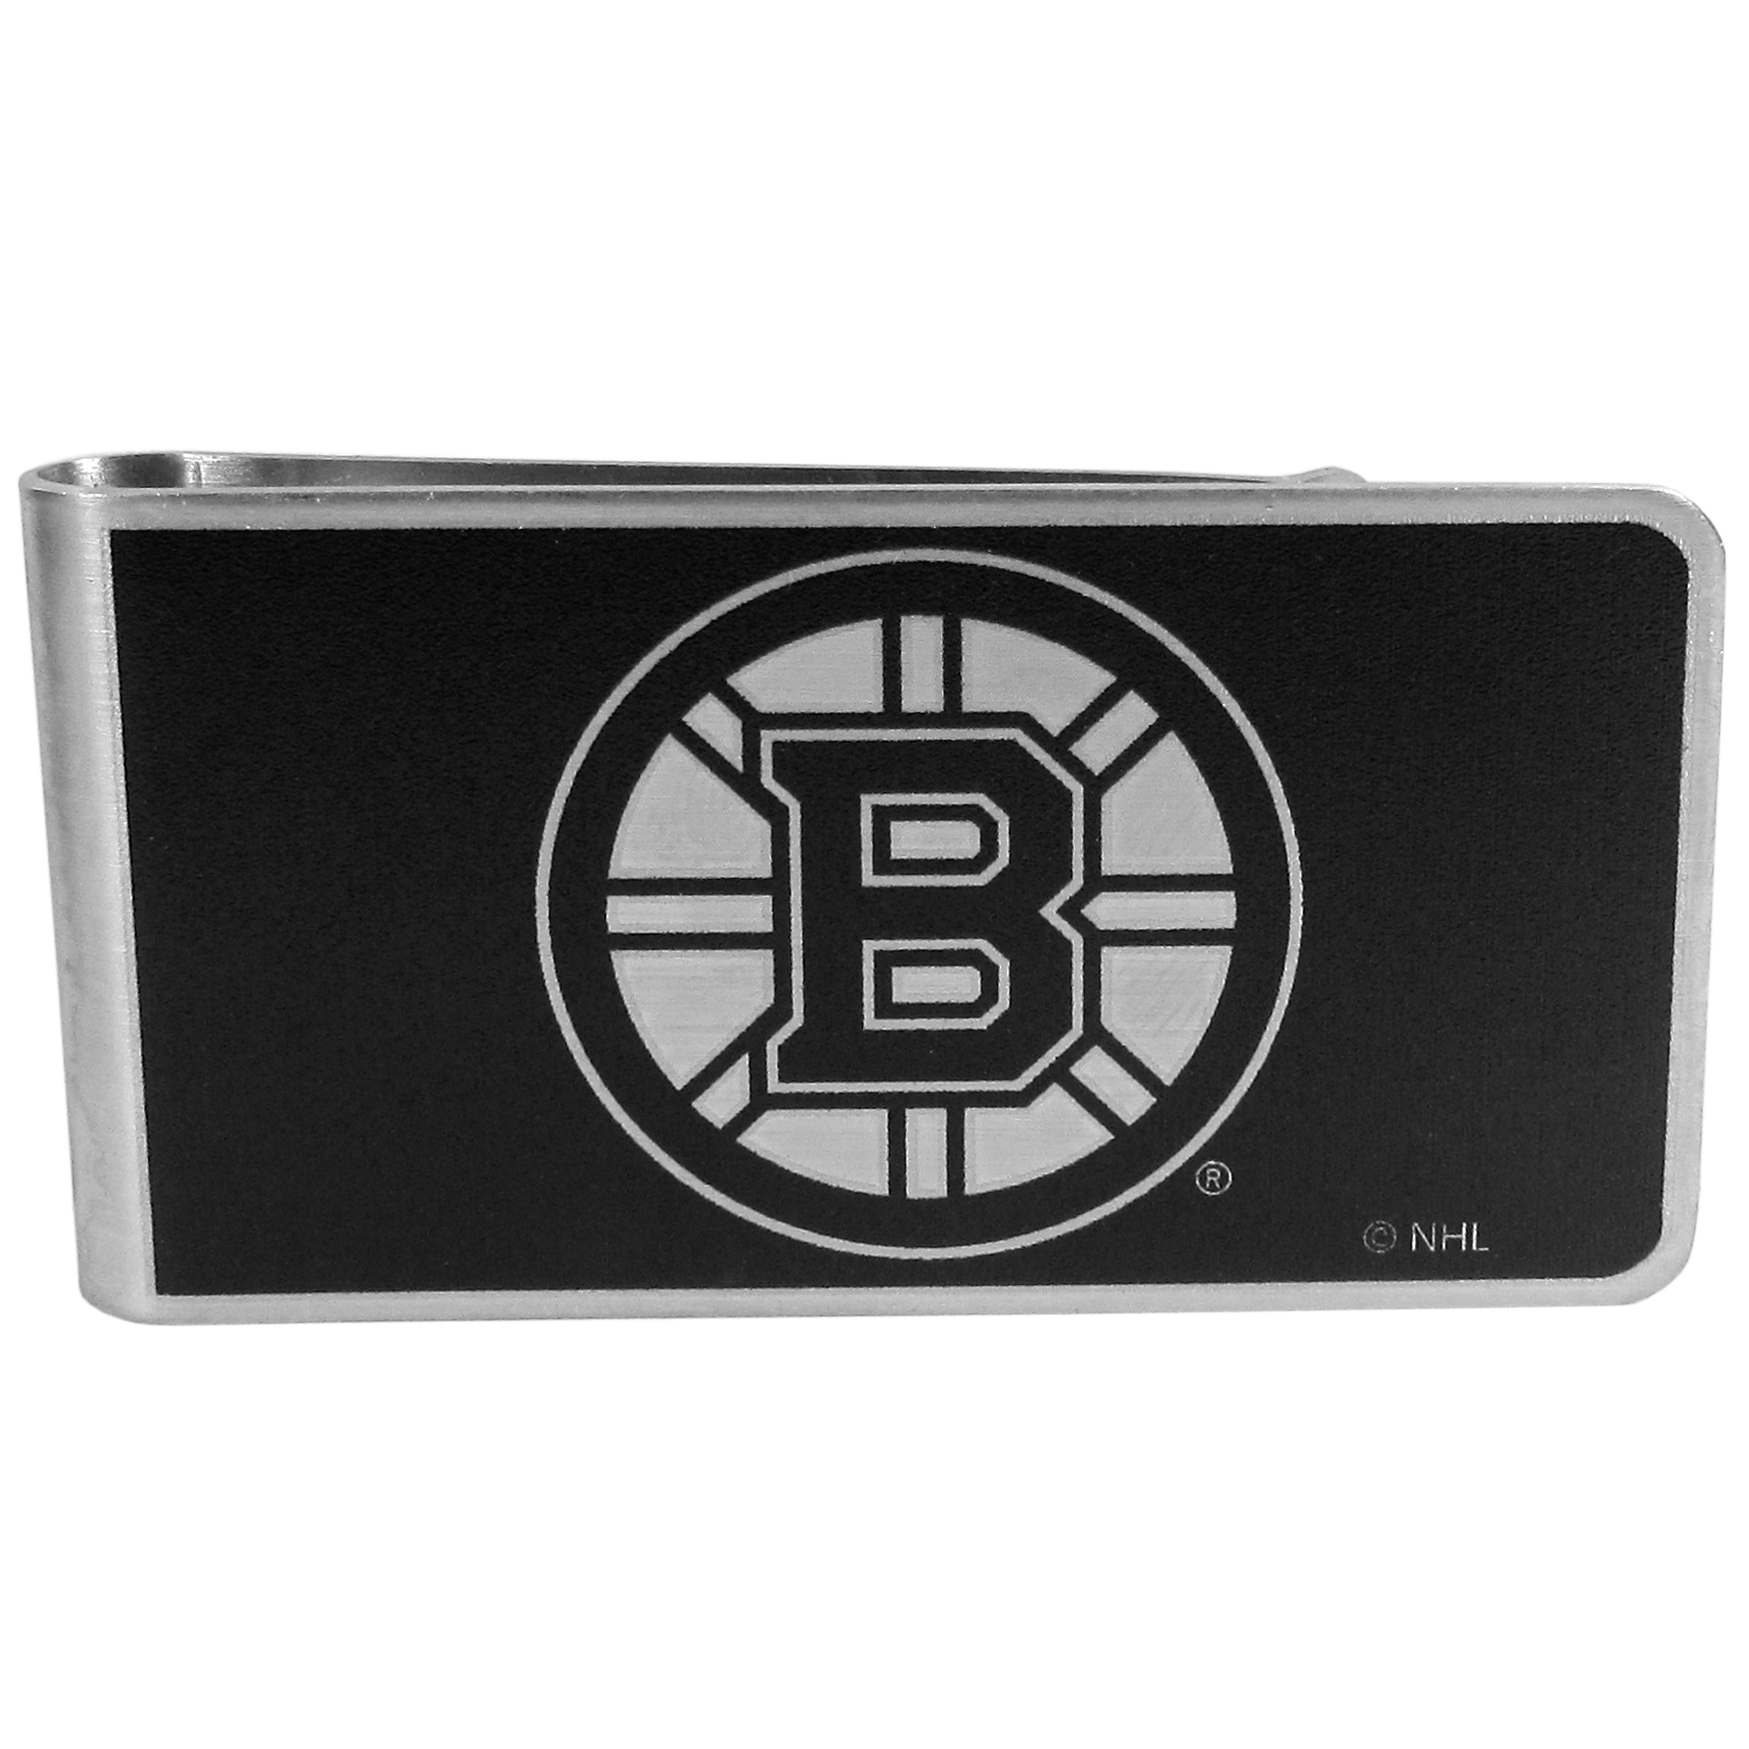 Boston Bruins® Black and Steel Money Clip - Our monochromatic steel money clips have a classic style and superior quality. The strong, steel clip has a black overlay of the Boston Bruins® logo over the brushed metal finish creating a stylish men's fashion accessory that would make any fan proud.